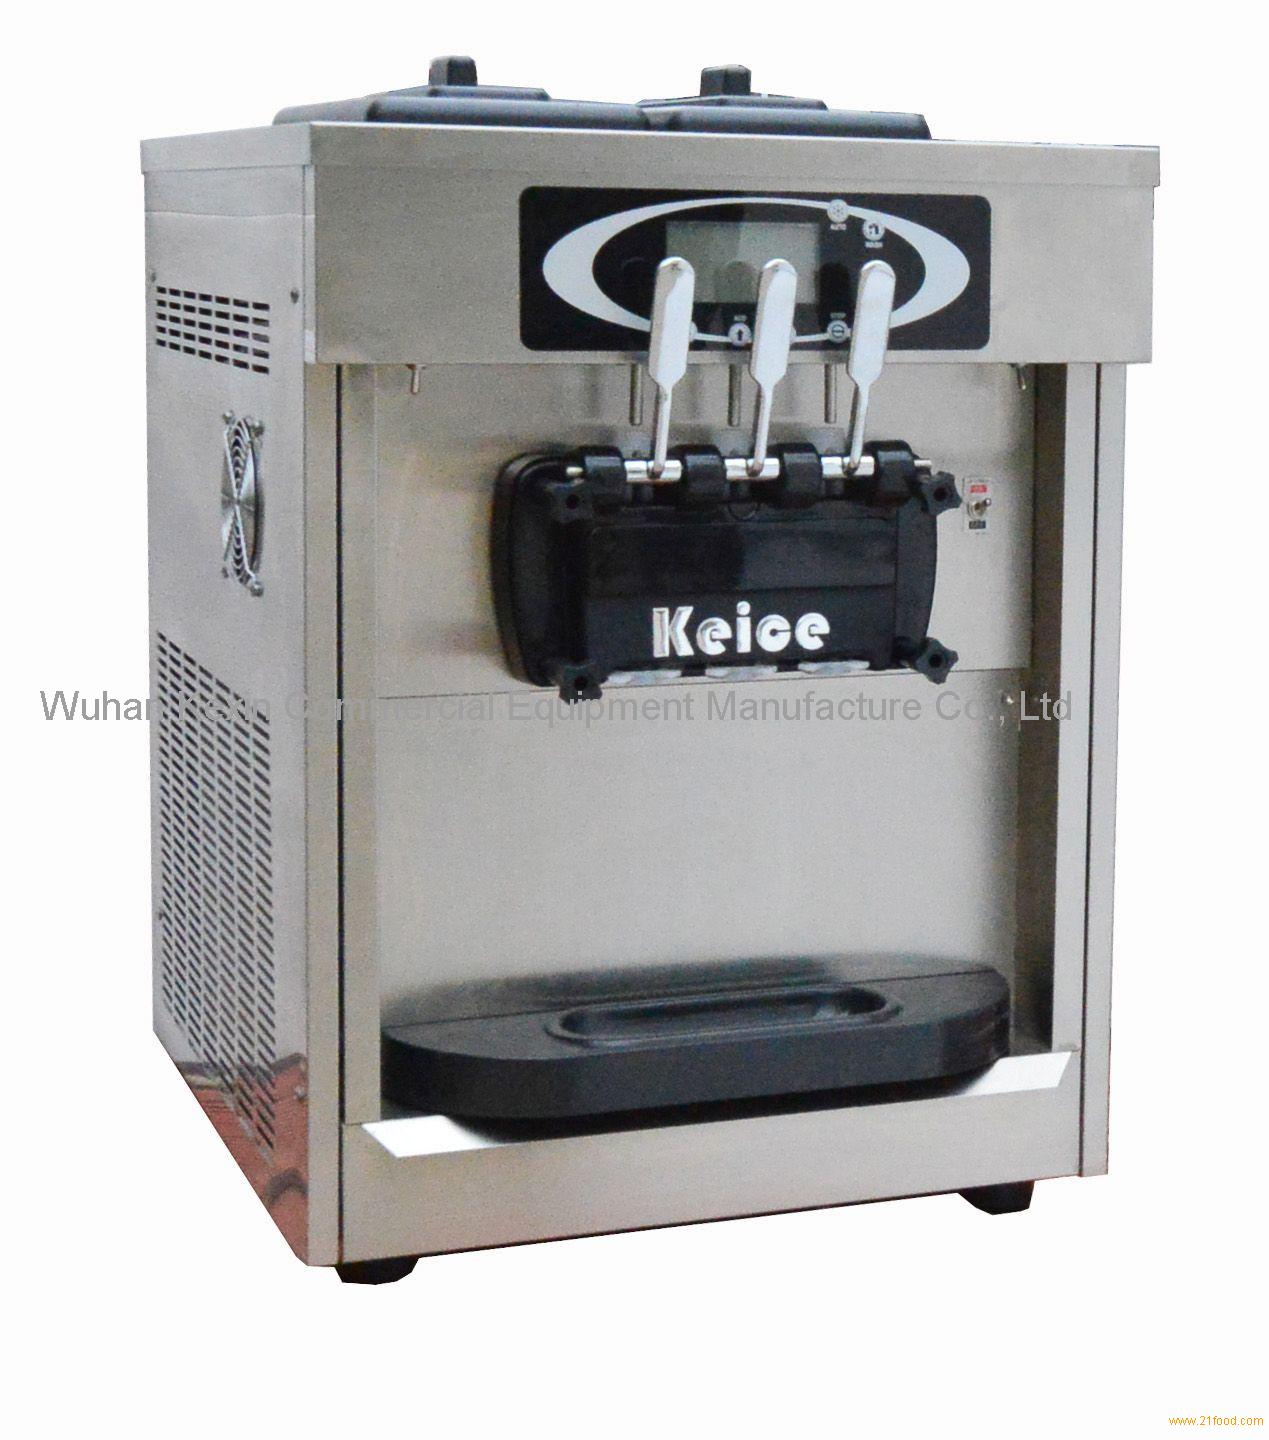 Countertop Yogurt Machine : Twin Twist Counter Top Frozen Yogurt Machine KB30-2DTA products,China ...